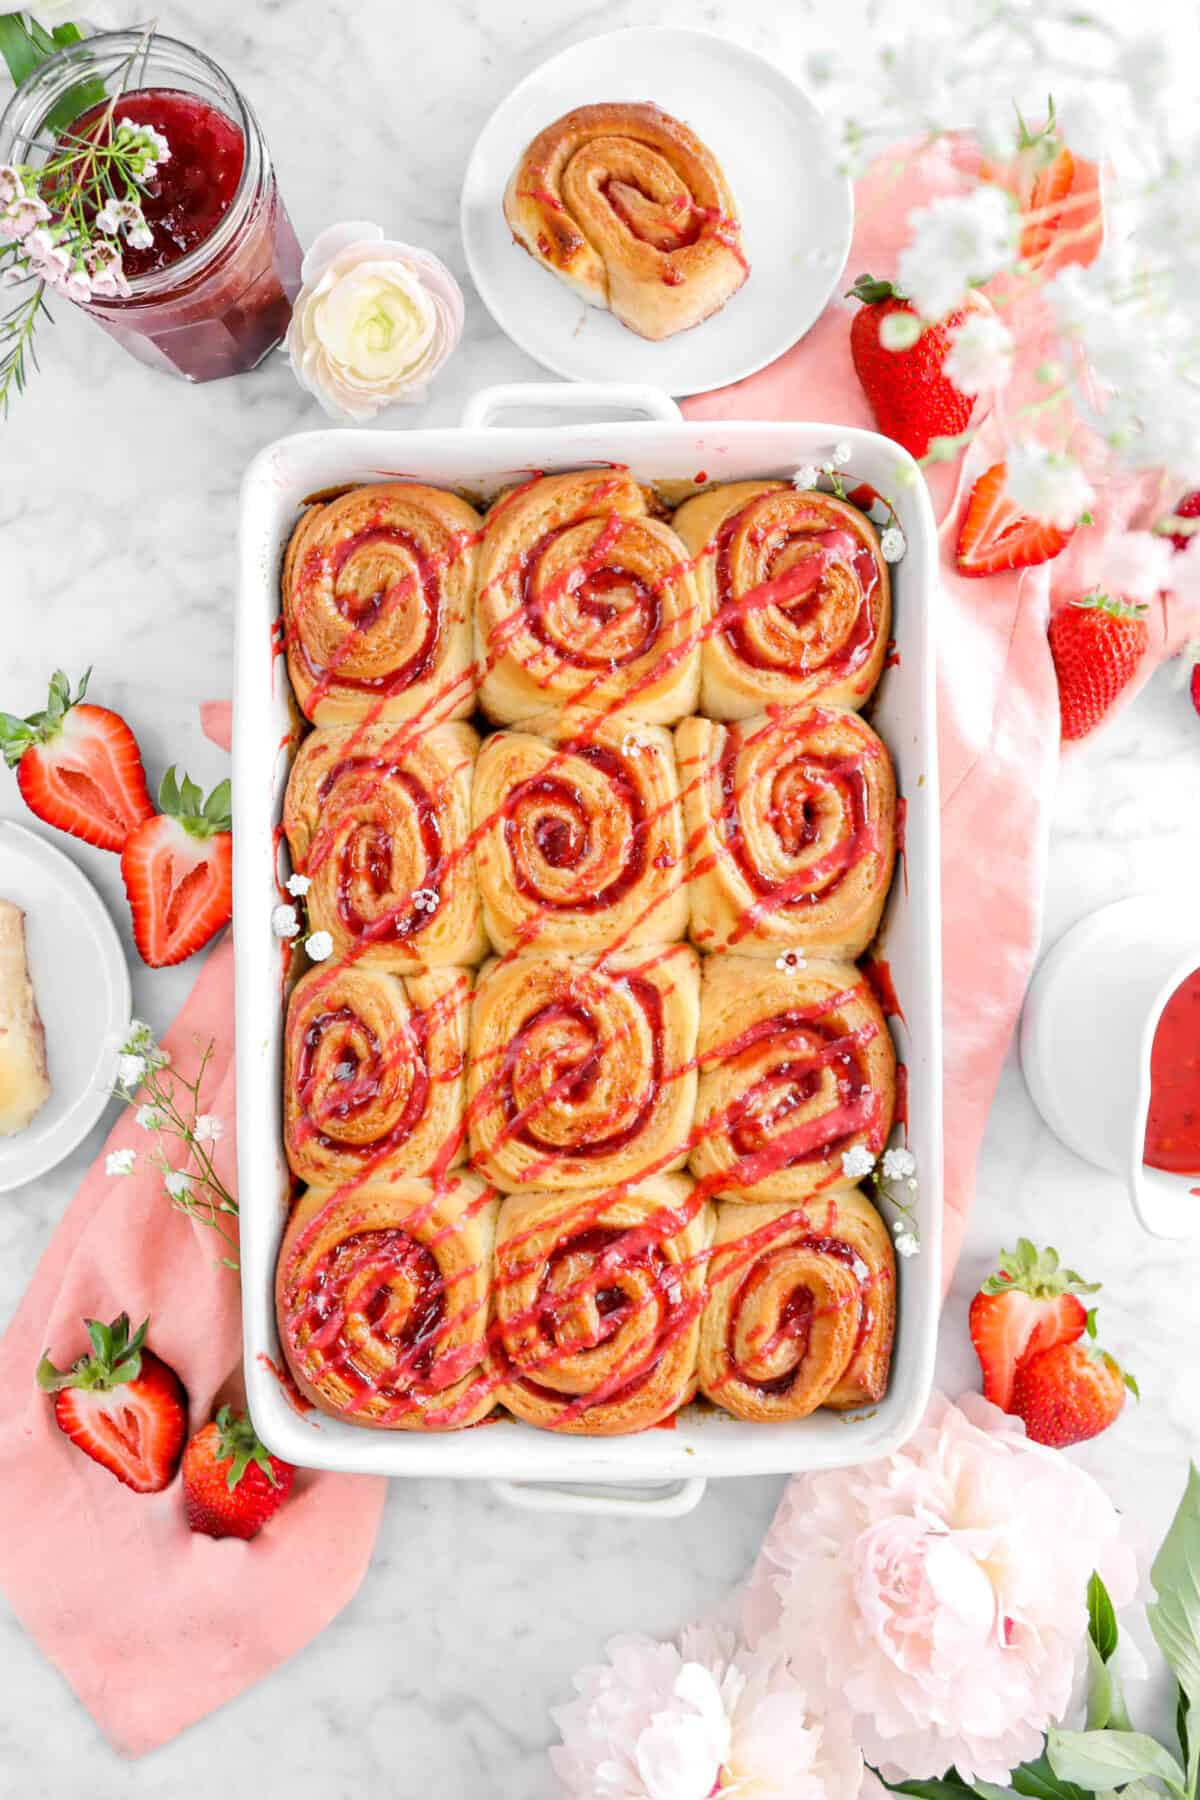 strawberry rolls with strawberry icing on pink napkin with flowers, strawberries, and more rolls around